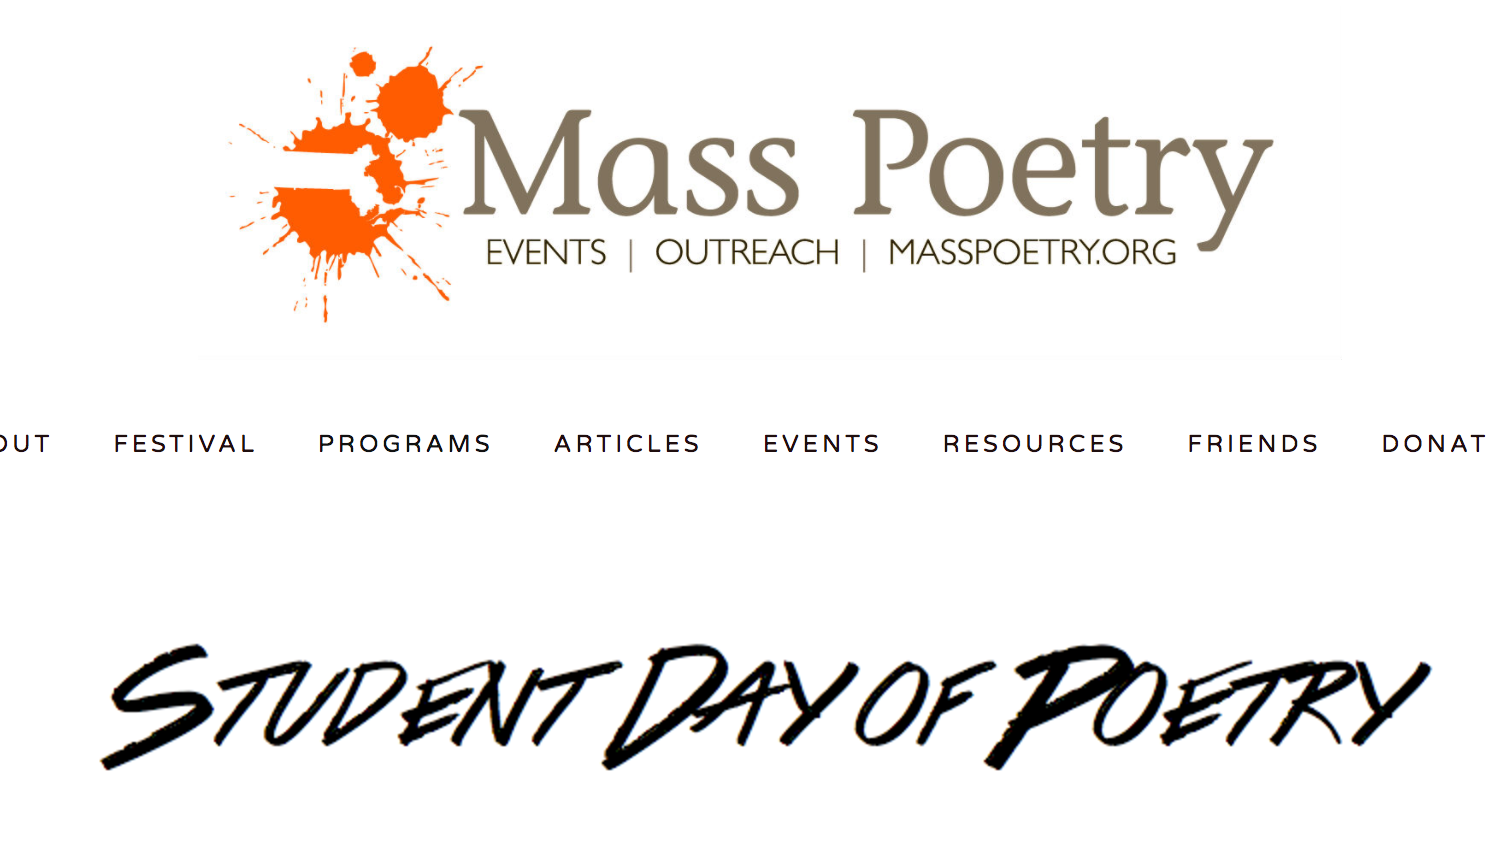 MassPoetry.org